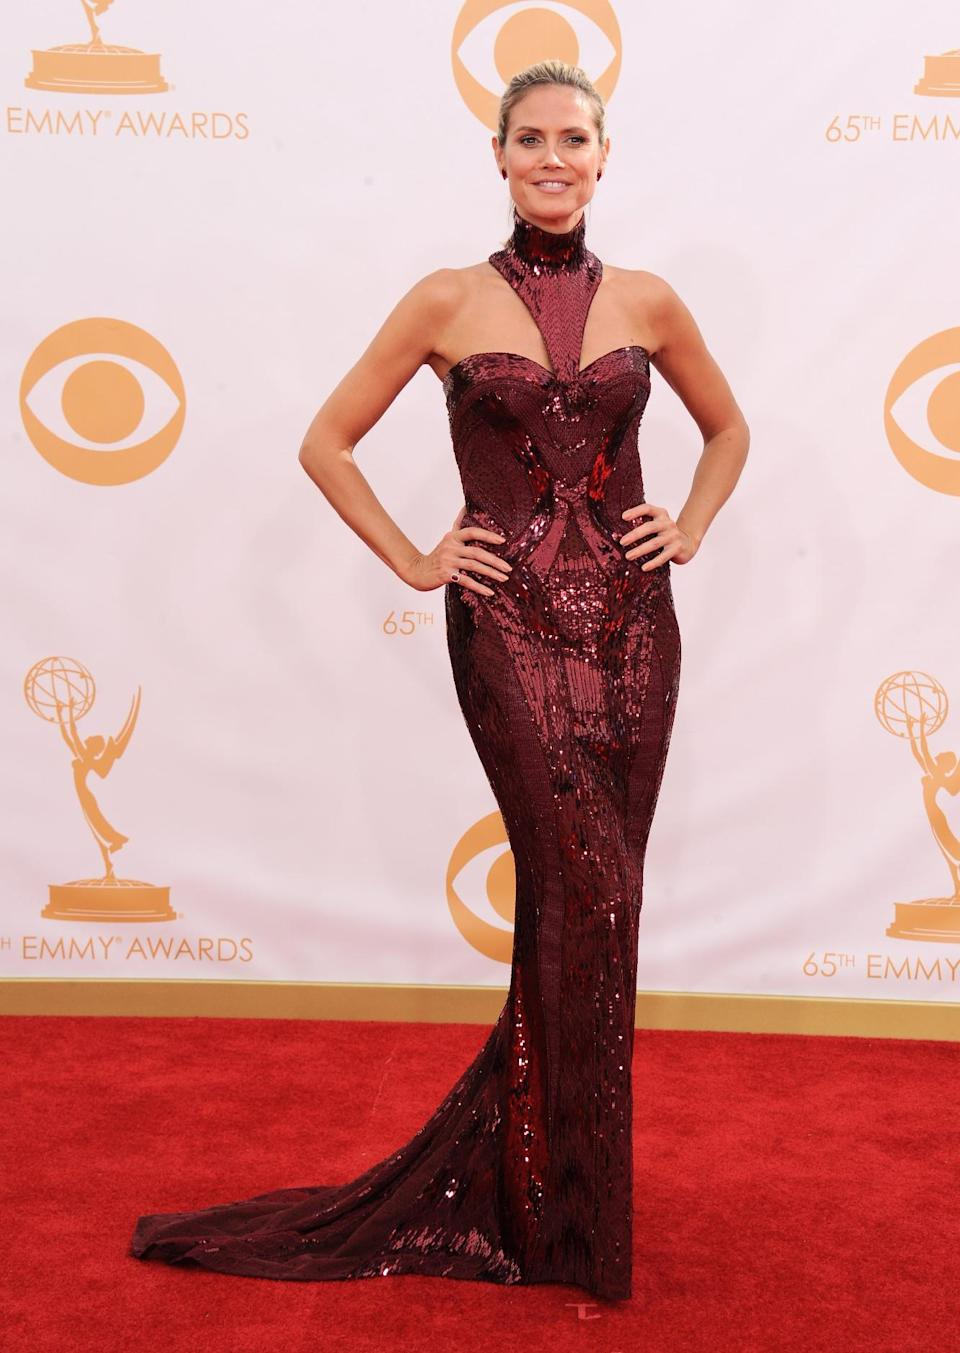 Heidi Klum, wearing Versace, arrives at the 65th Primetime Emmy Awards at Nokia Theatre on Sunday Sept. 22, 2013, in Los Angeles. (Photo by Jordan Strauss/Invision/AP)